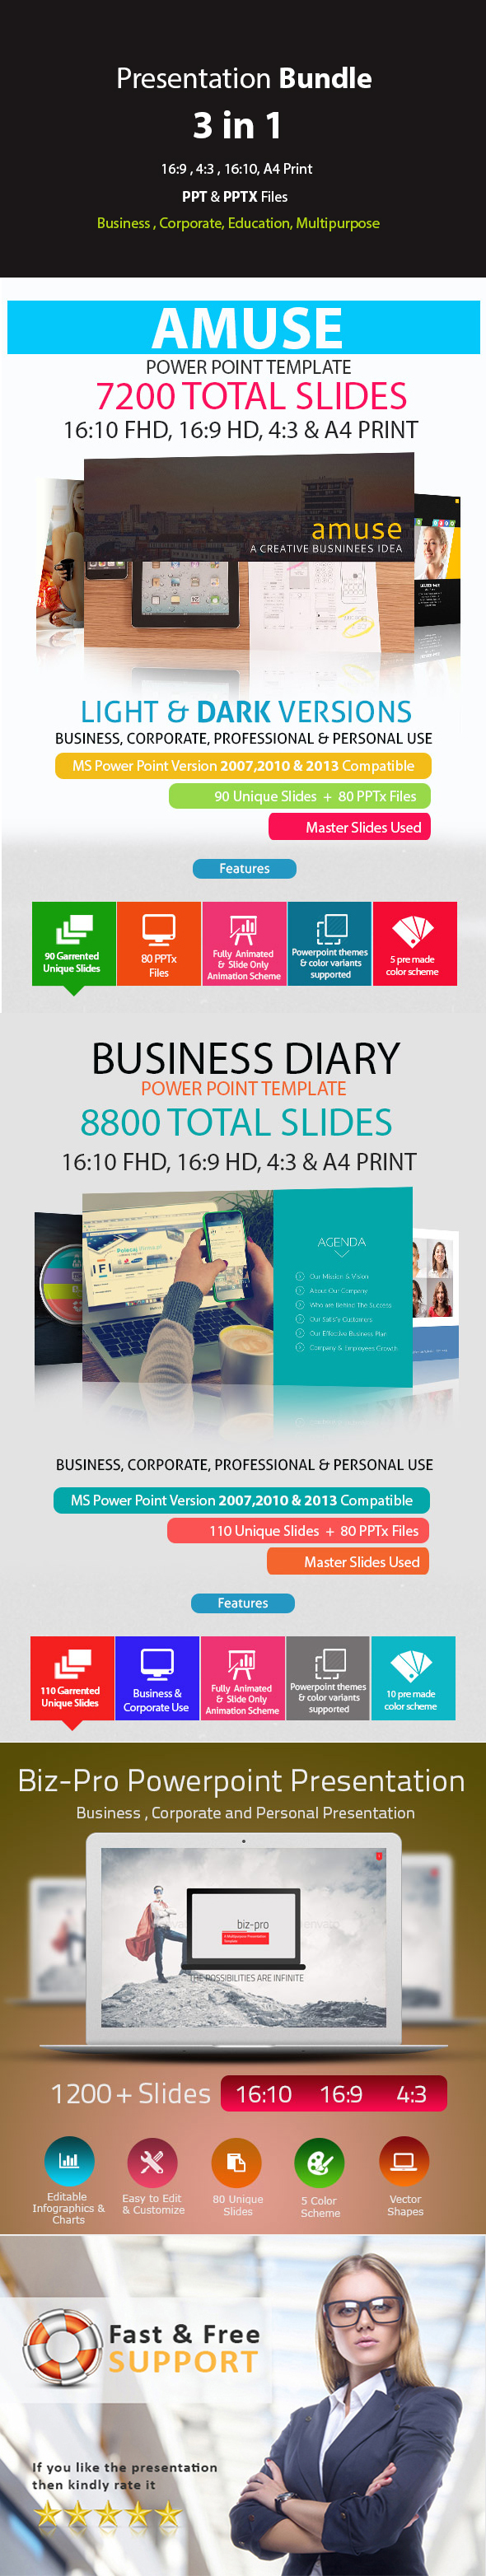 Business Bundle 3 in 1 Power Point Presentation - Business PowerPoint Templates